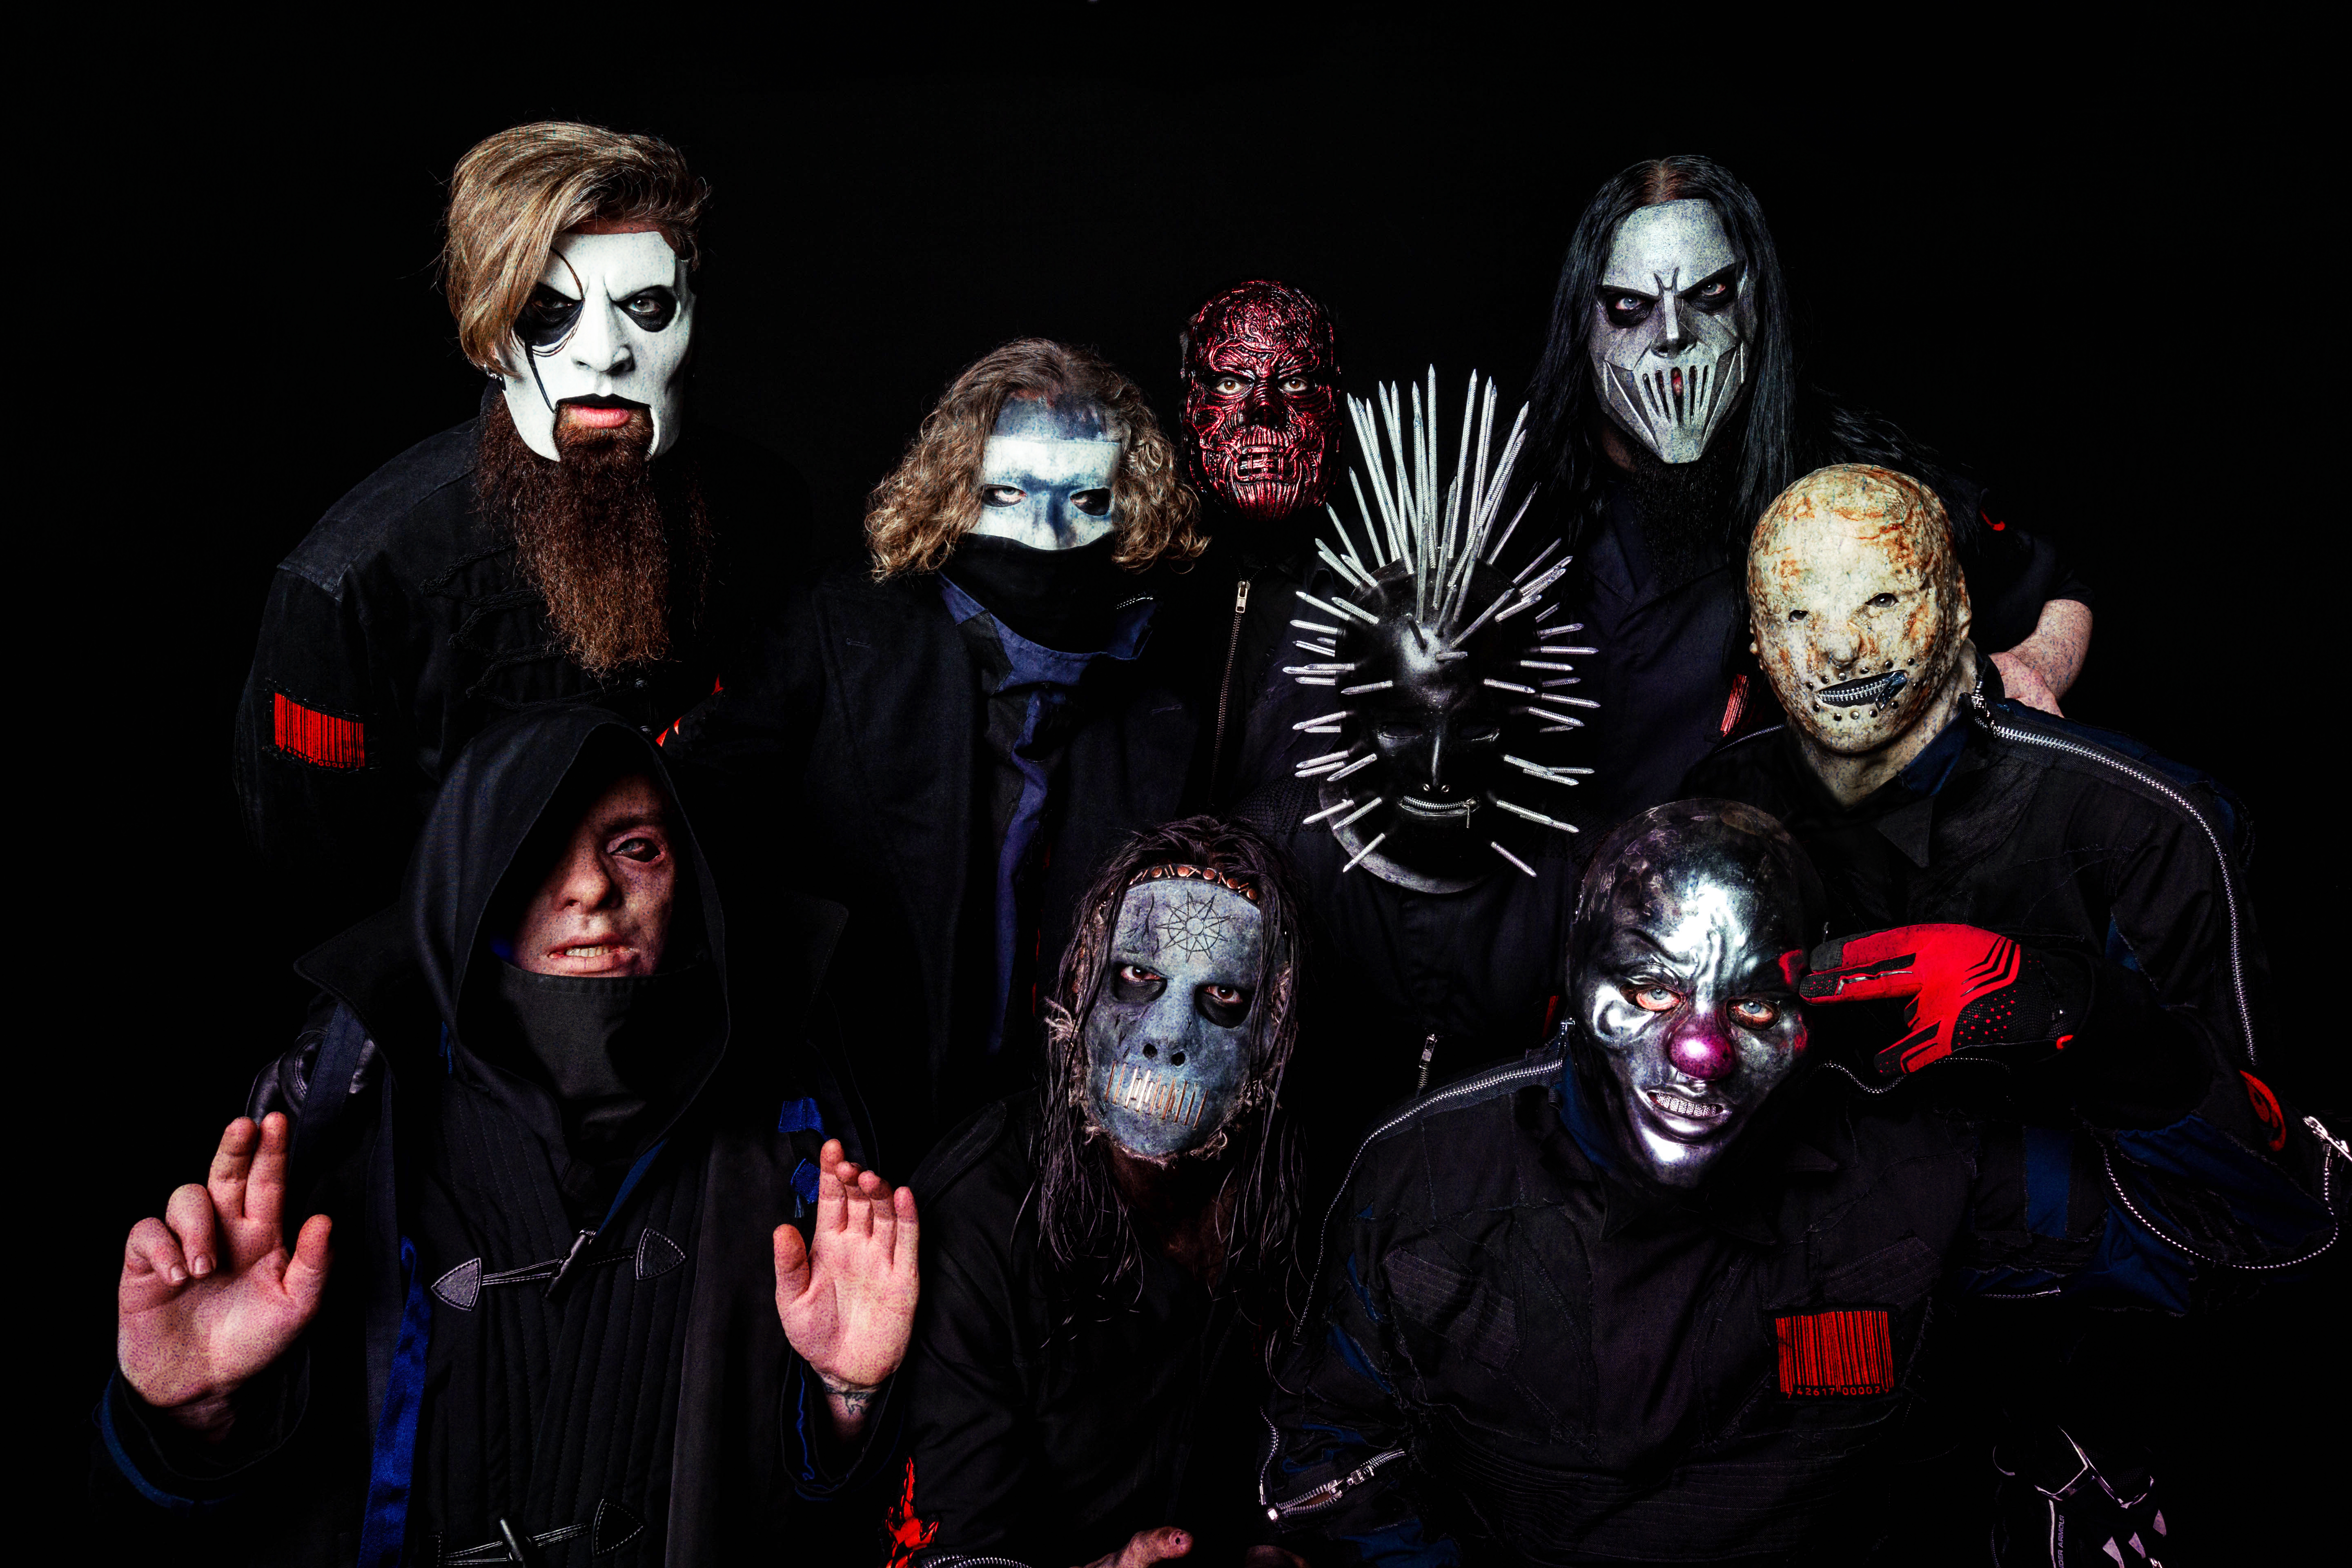 We Are Not Your Kind é o novo álbum dos Slipknot